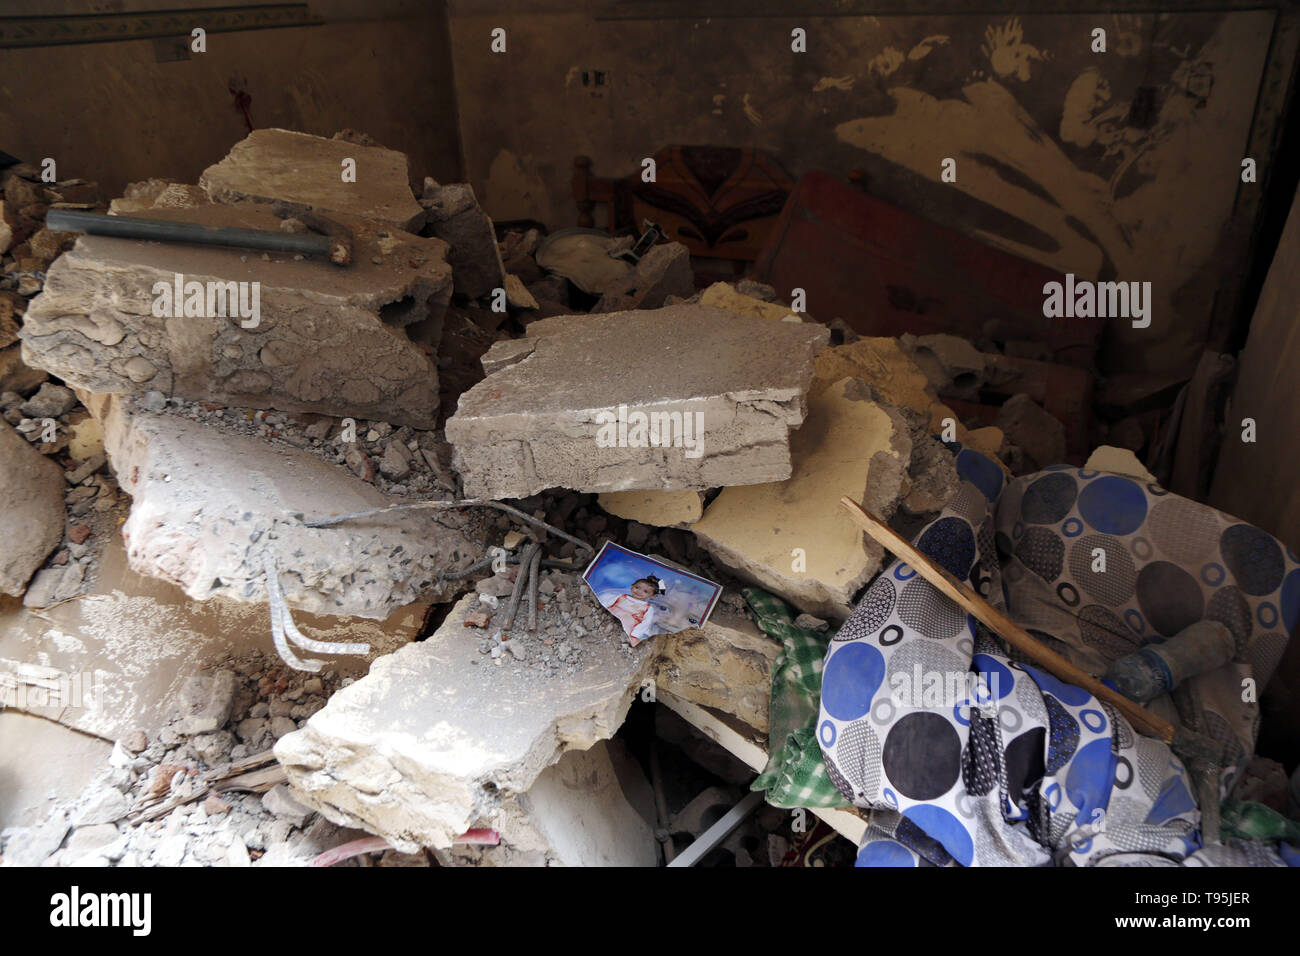 Sanaa, Yemen. 16th May 2019. A picture of a child is seen among rubble of a damaged house after an airstrike hit by the Saudi Arabia-led coalition in Sanaa, capital of Yemen, May 16, 2019. The Saudi Arabia-led coalition launched airstrikes on Houthi rebels' targets in the Yemeni capital Sanaa on Thursday morning, causing civilian casualties and damages, authorities and local residents said. At least six family members were killed when a coalition airstrike hit a house in the center of Sanaa, the rebel-controlled Health Ministry said in a statement. Credit: Xinhua/Alamy Live News - Stock Image